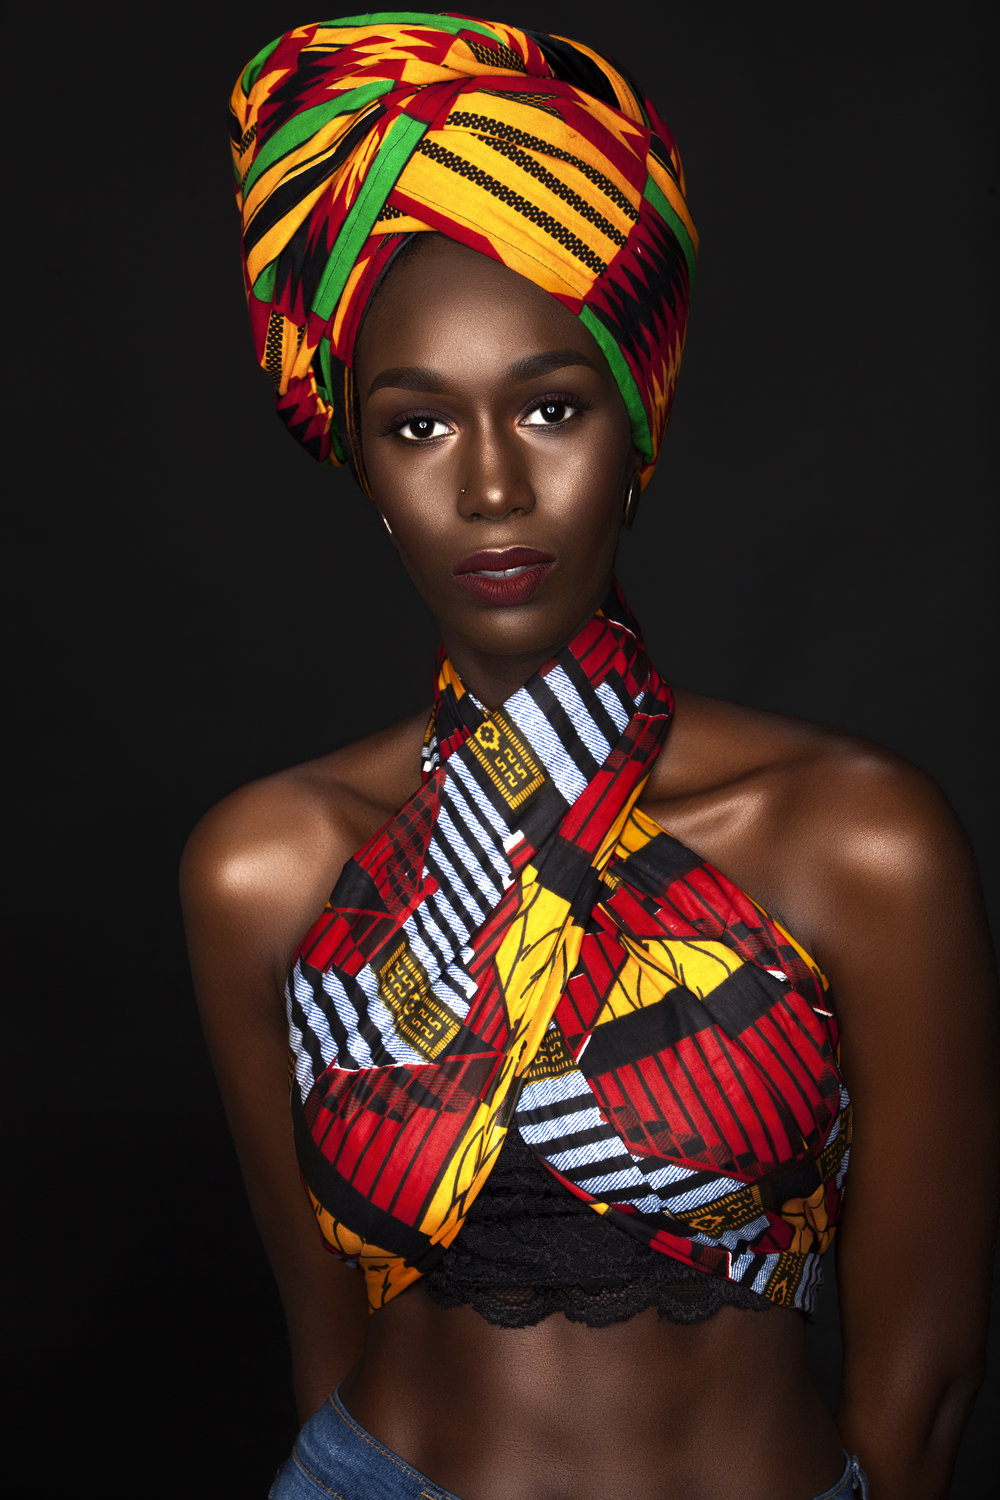 Model: Dieynaba Diop; Fashions Model, Instagram: Belleflani